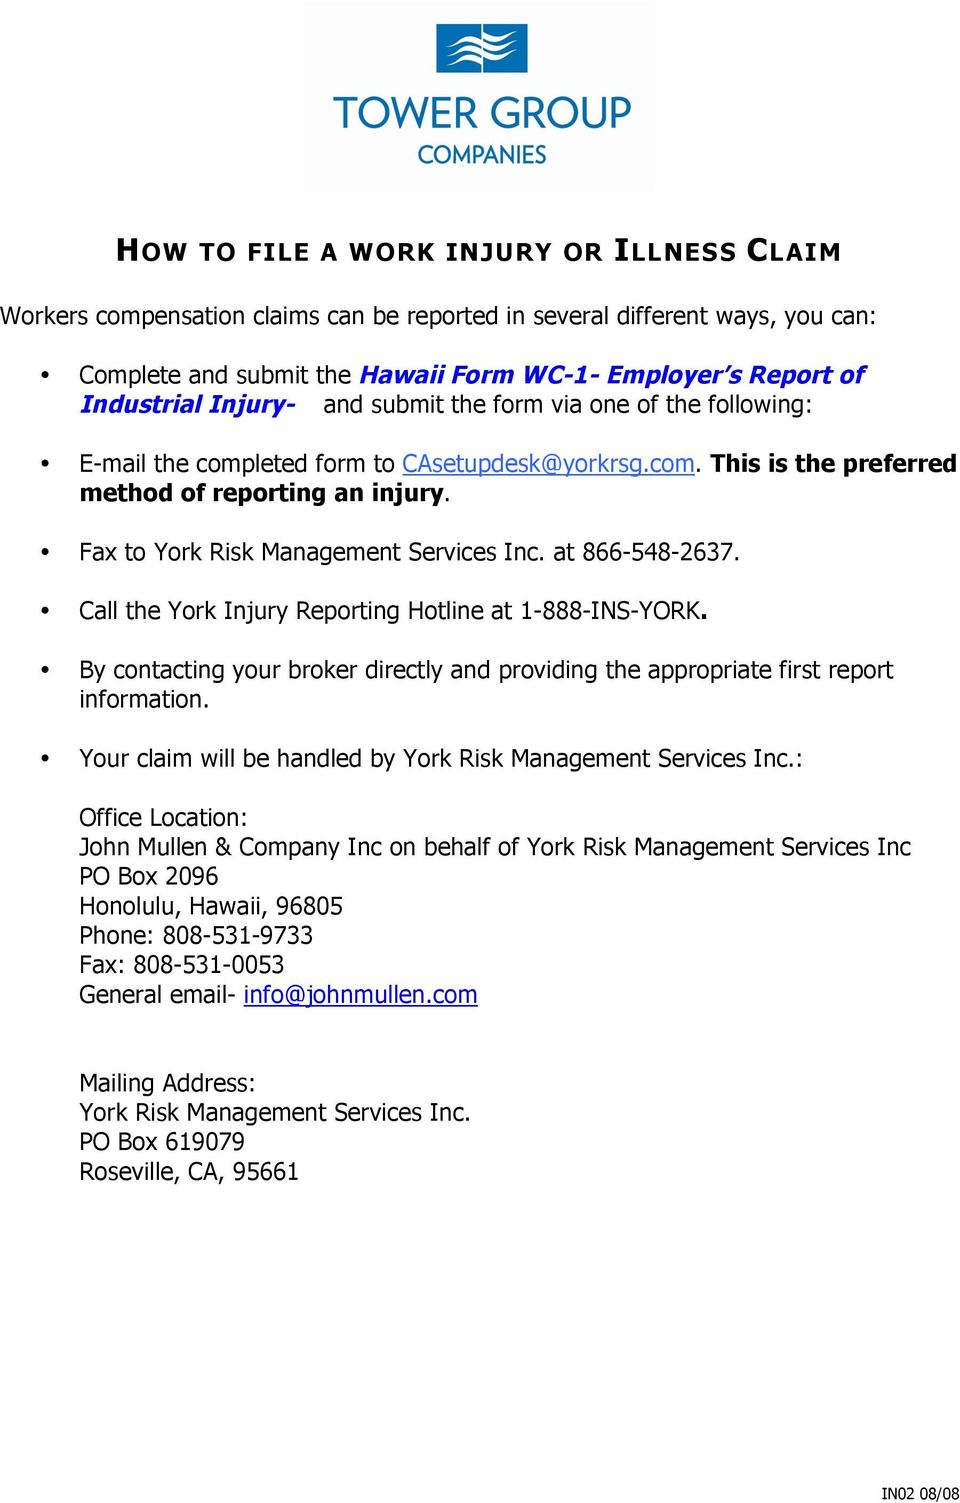 Fax to York Risk Management Services Inc. at 866-548-2637. Call the York Injury Reporting Hotline at 1-888-INS-YORK.